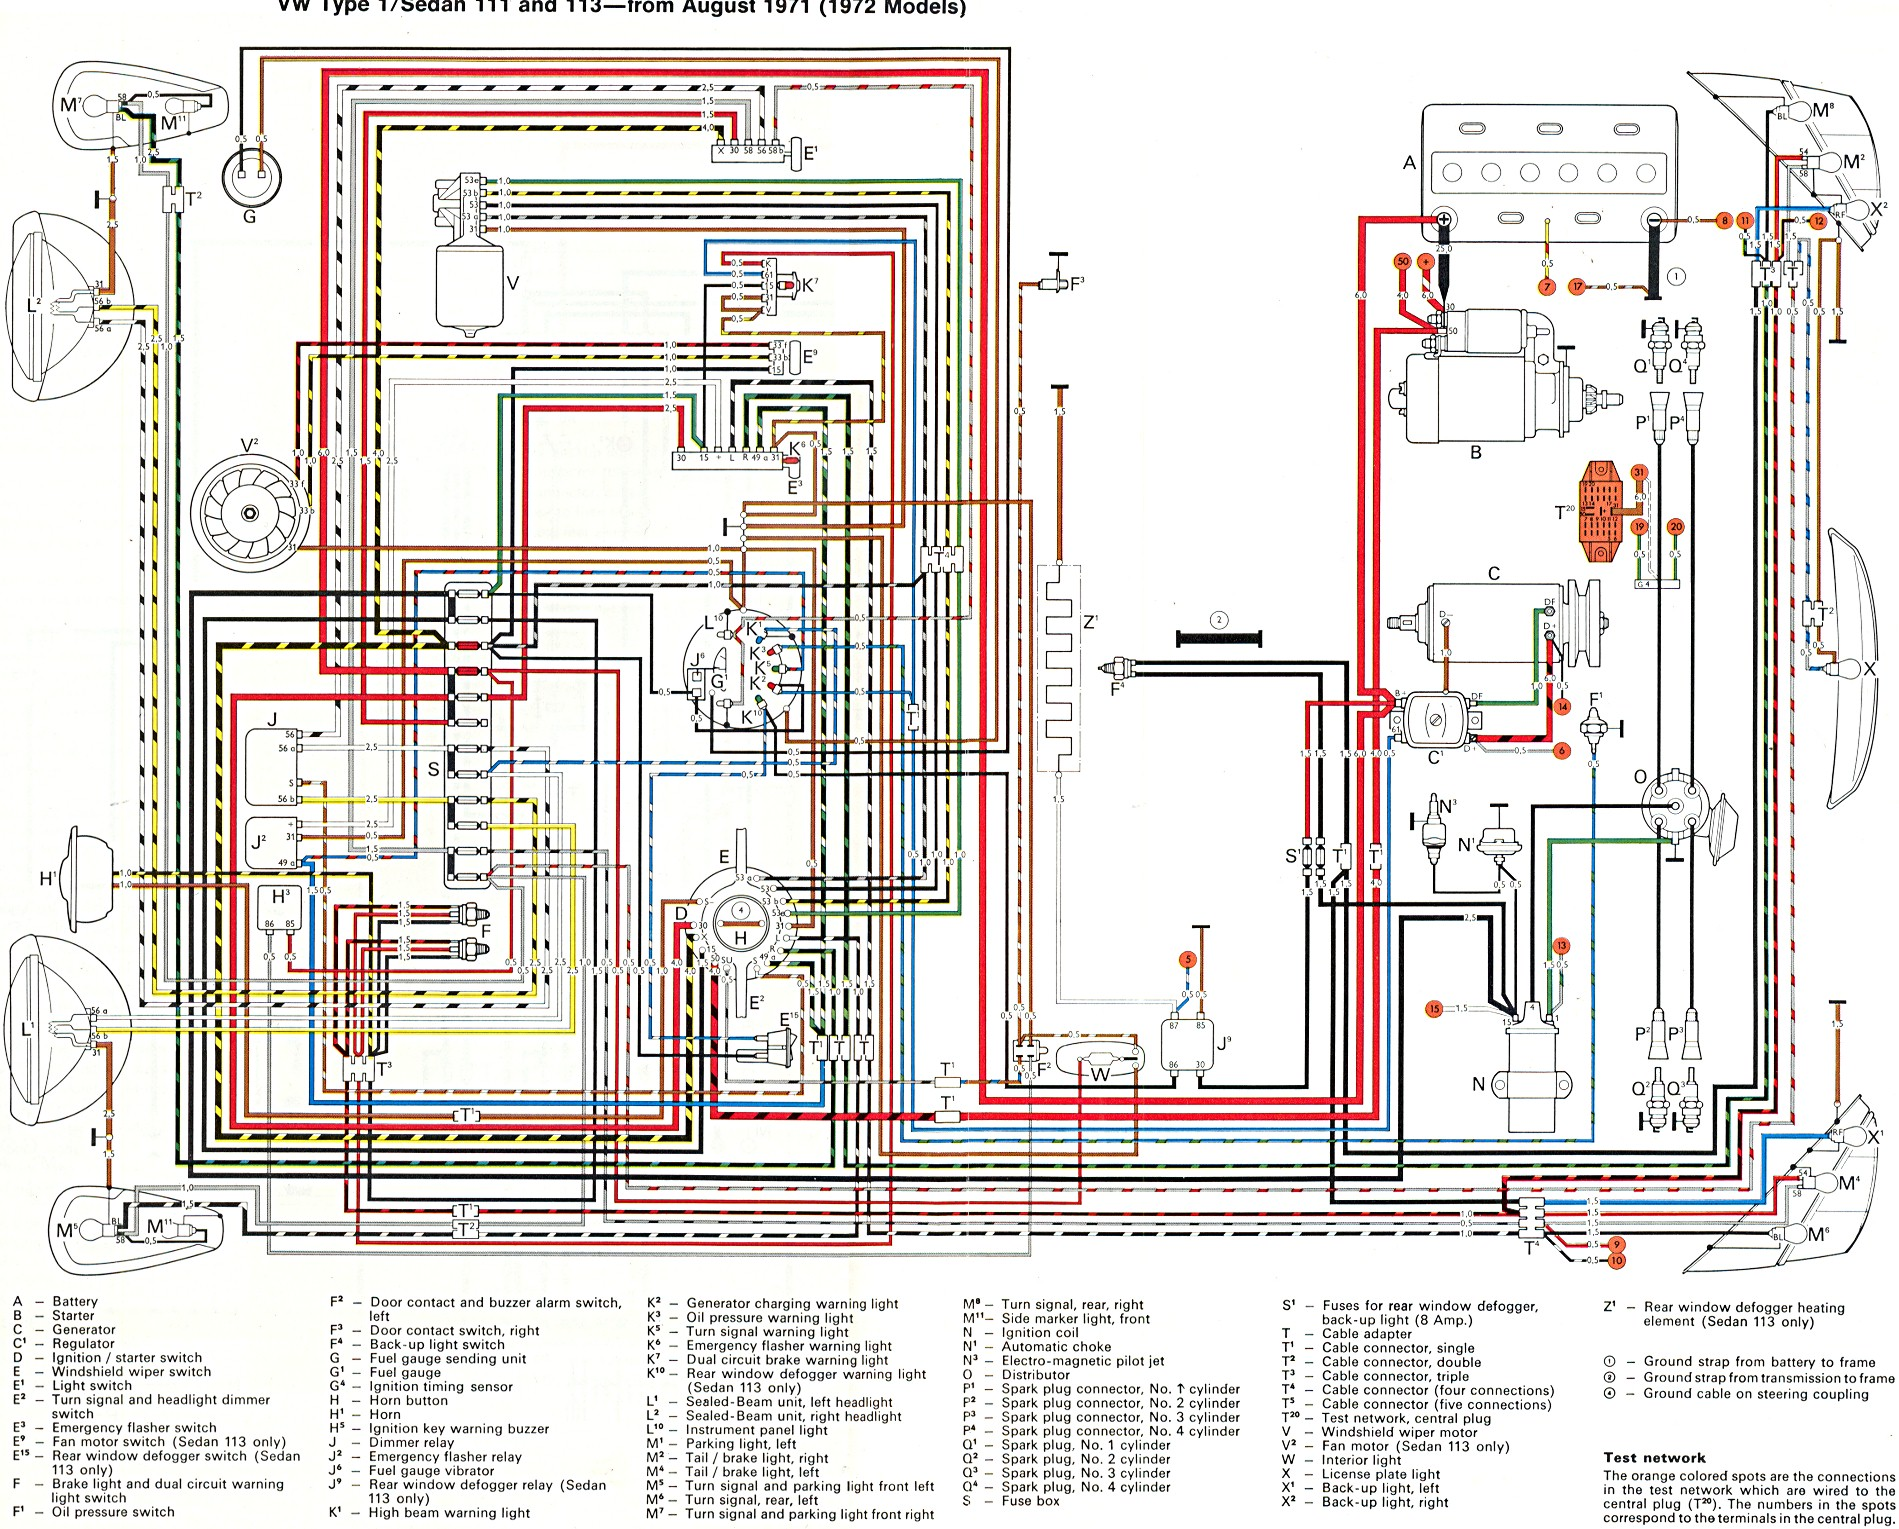 1972 beetle wiring diagram 19 sg dbd de \u202272 vw bus engine diagram super beetle engine diagram 1972 beetle wiring diagram 1971 beetle wiring diagram